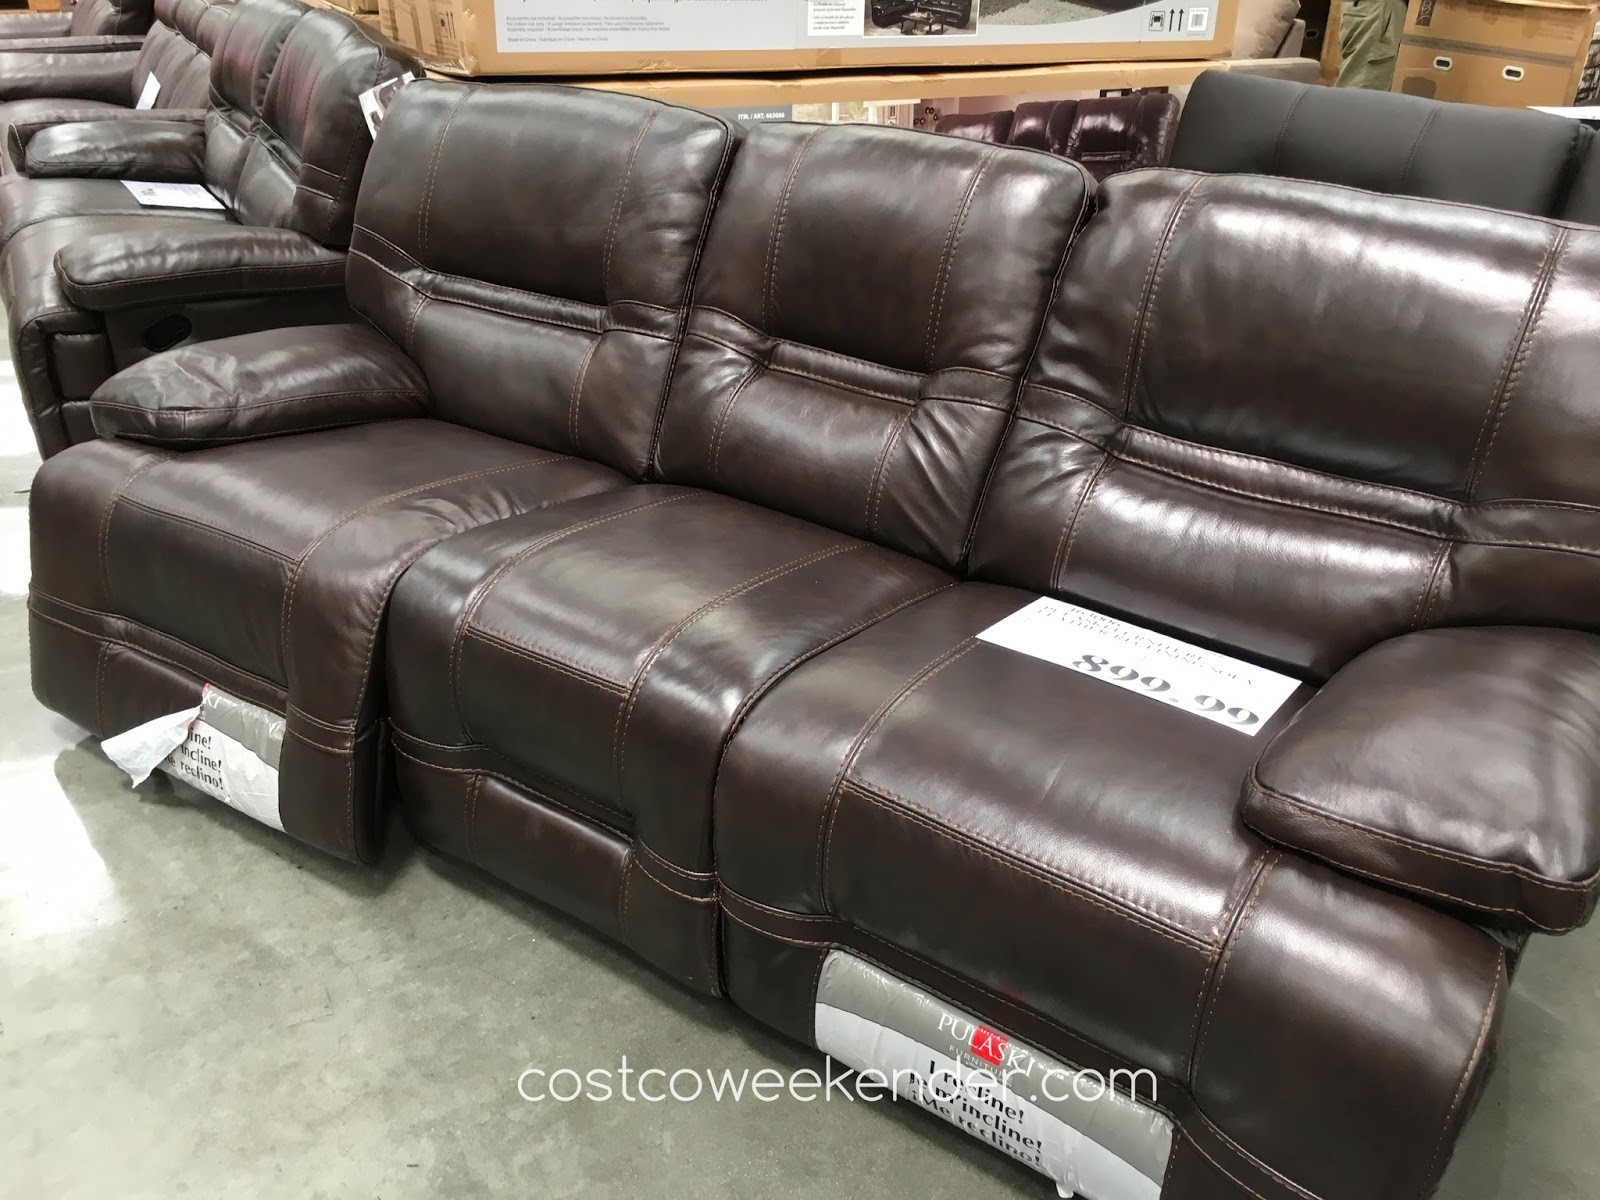 Best Of Costco Furniture Sofas Wallpaper Modern Sofa Design Ideas Modern Sofa Design Ideas